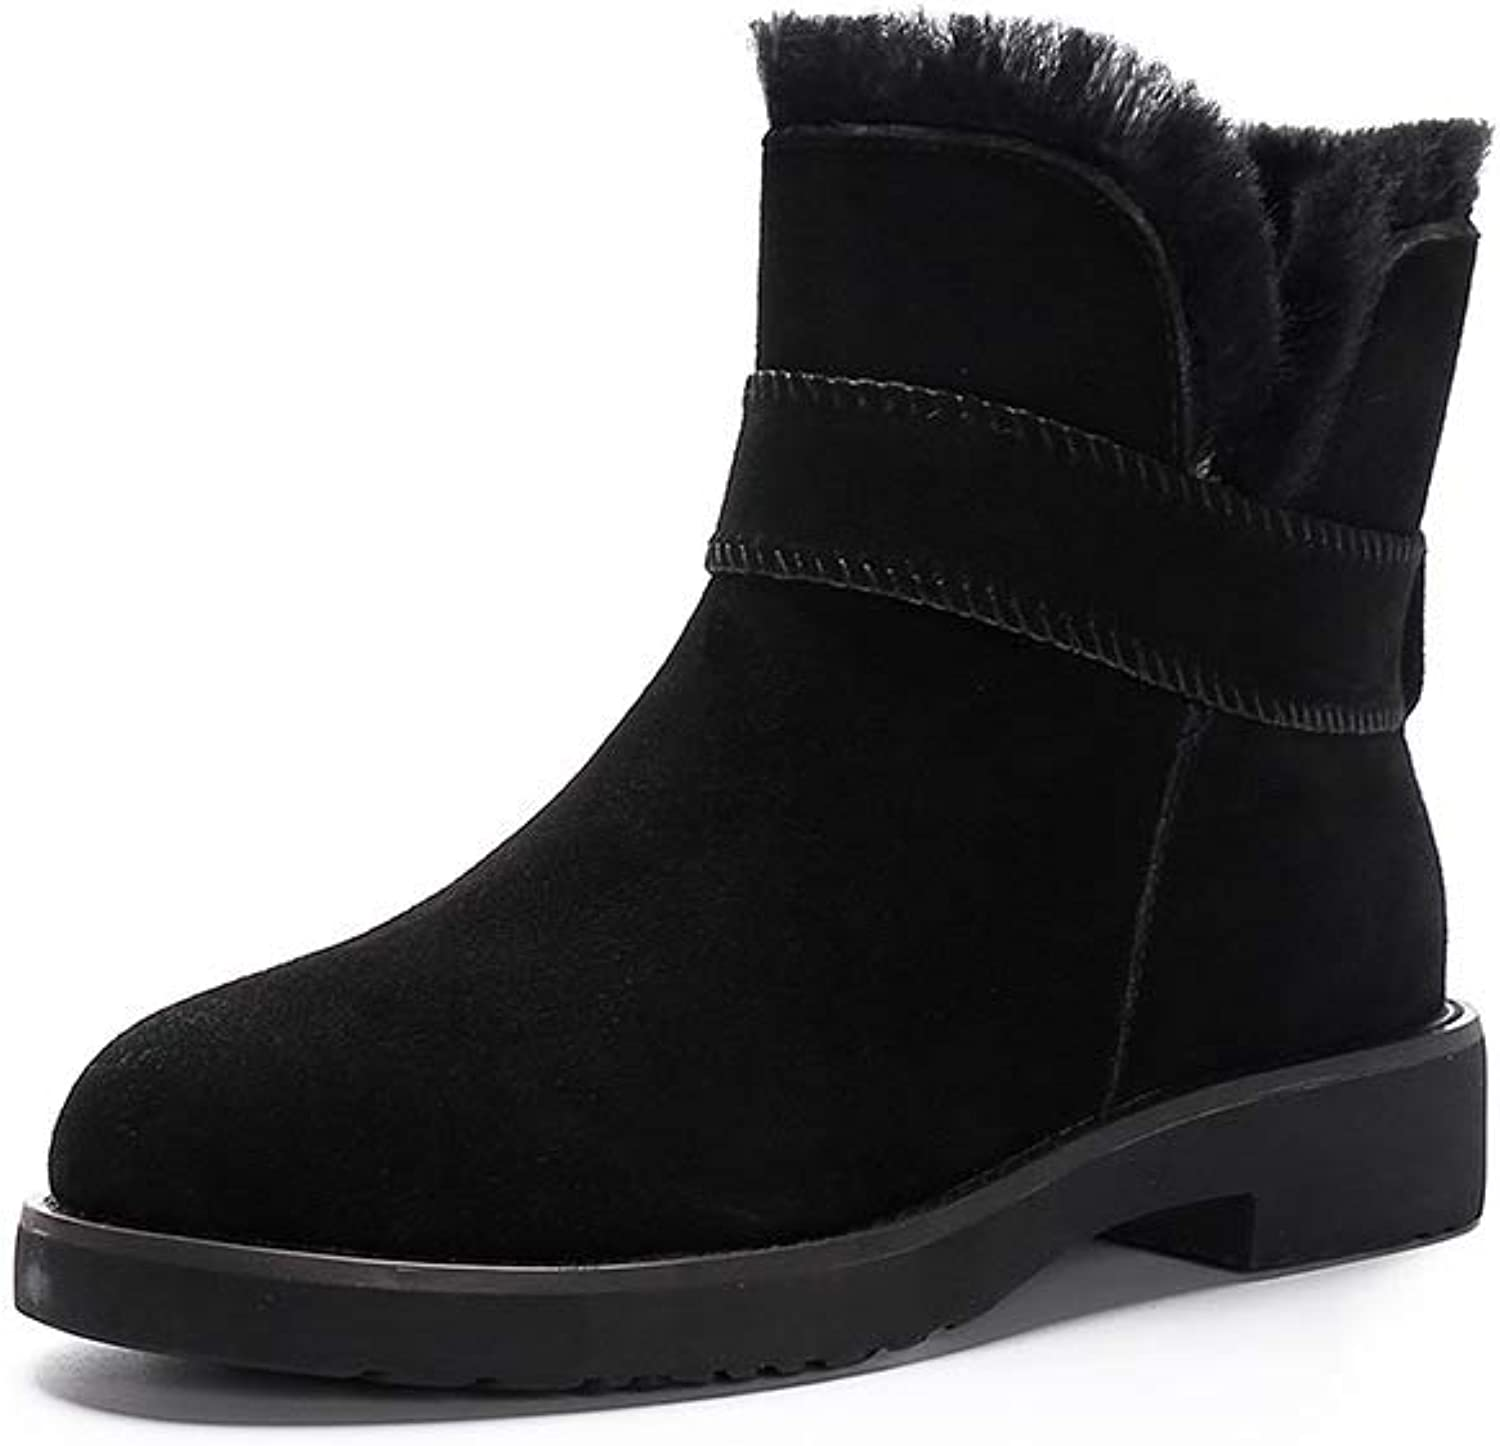 PP Fashion Winter Snow Boots,Genuine Leather Warm Ankle Boots,Fur Lining,Waterproof Perfect Neutral shoes for Women